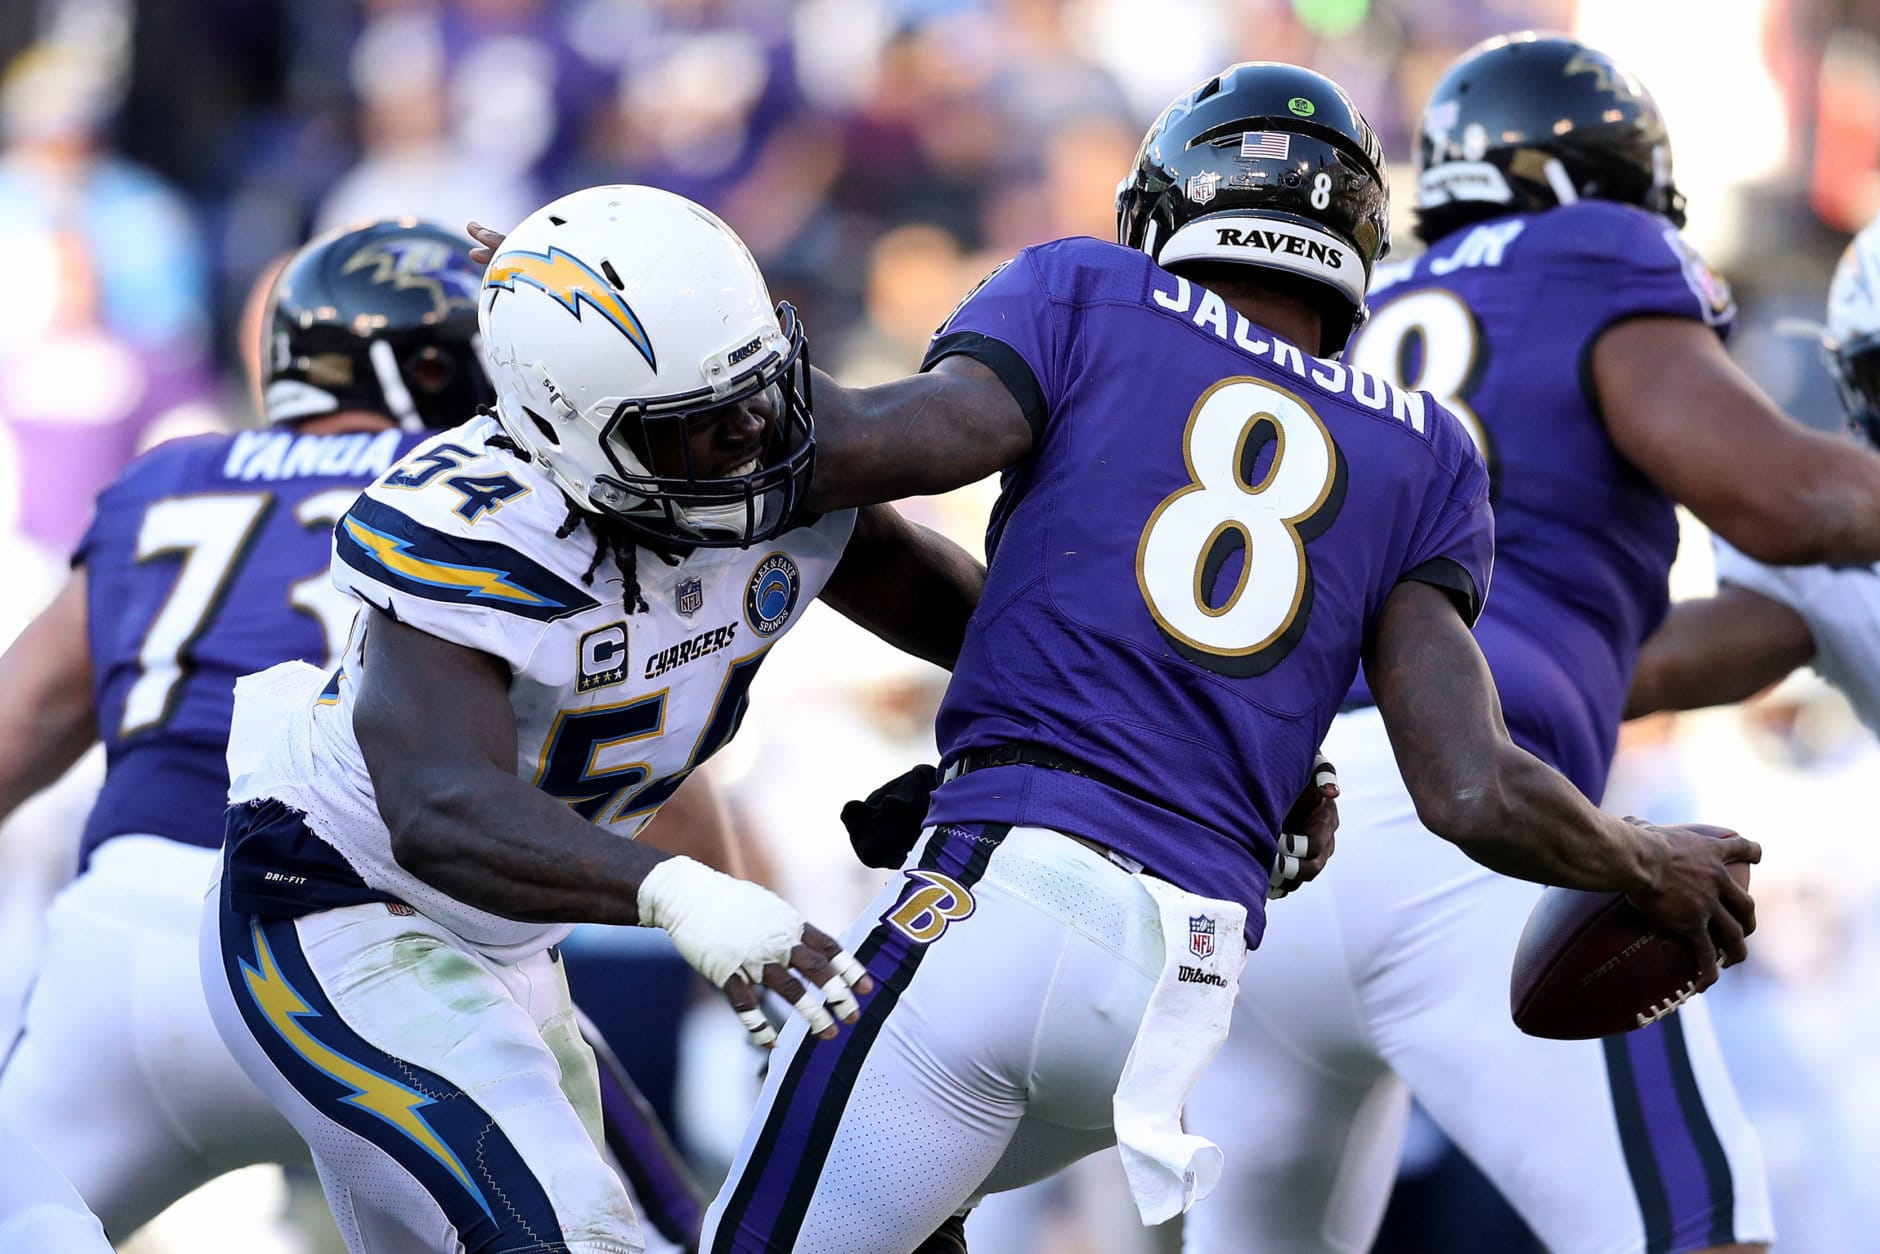 BALTIMORE, MARYLAND - JANUARY 06: Lamar Jackson #8 of the Baltimore Ravens gets sacked by Melvin Ingram #54 of the Los Angeles Chargers during the third quarter in the AFC Wild Card Playoff game at M&T Bank Stadium on January 06, 2019 in Baltimore, Maryland. (Photo by Patrick Smith/Getty Images)